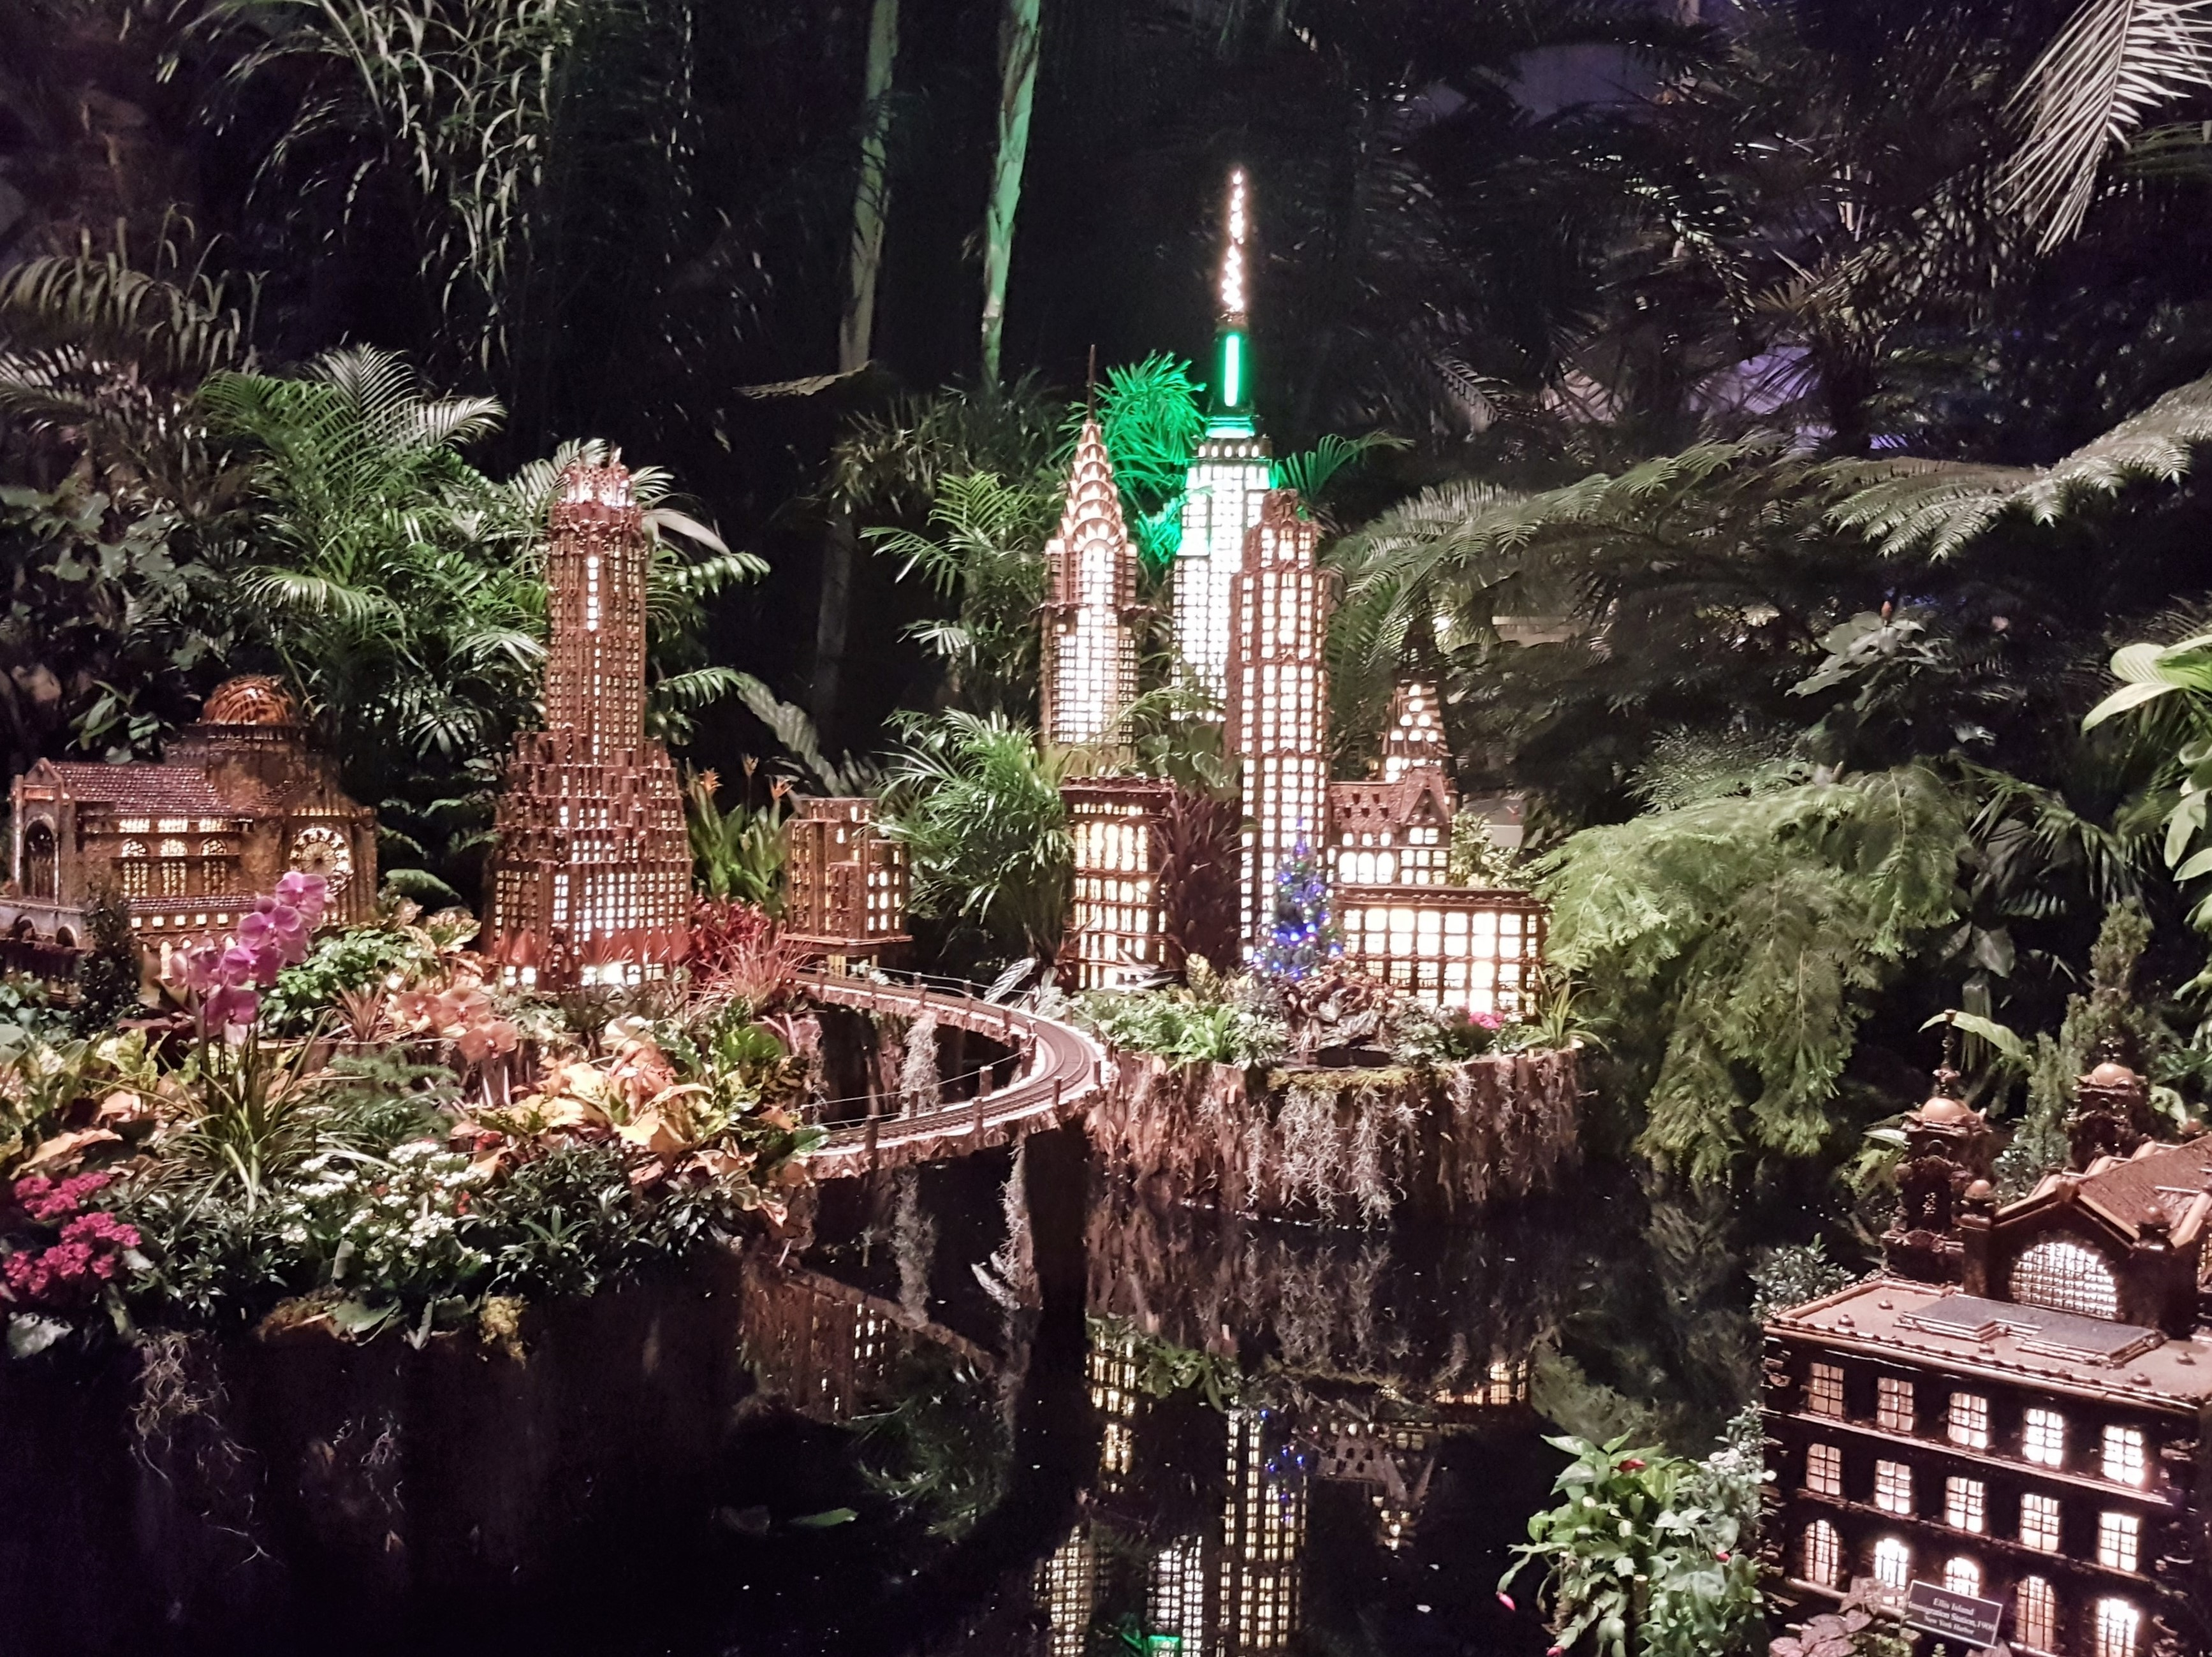 Holiday Train Show At The New York Botanical Garden 2018